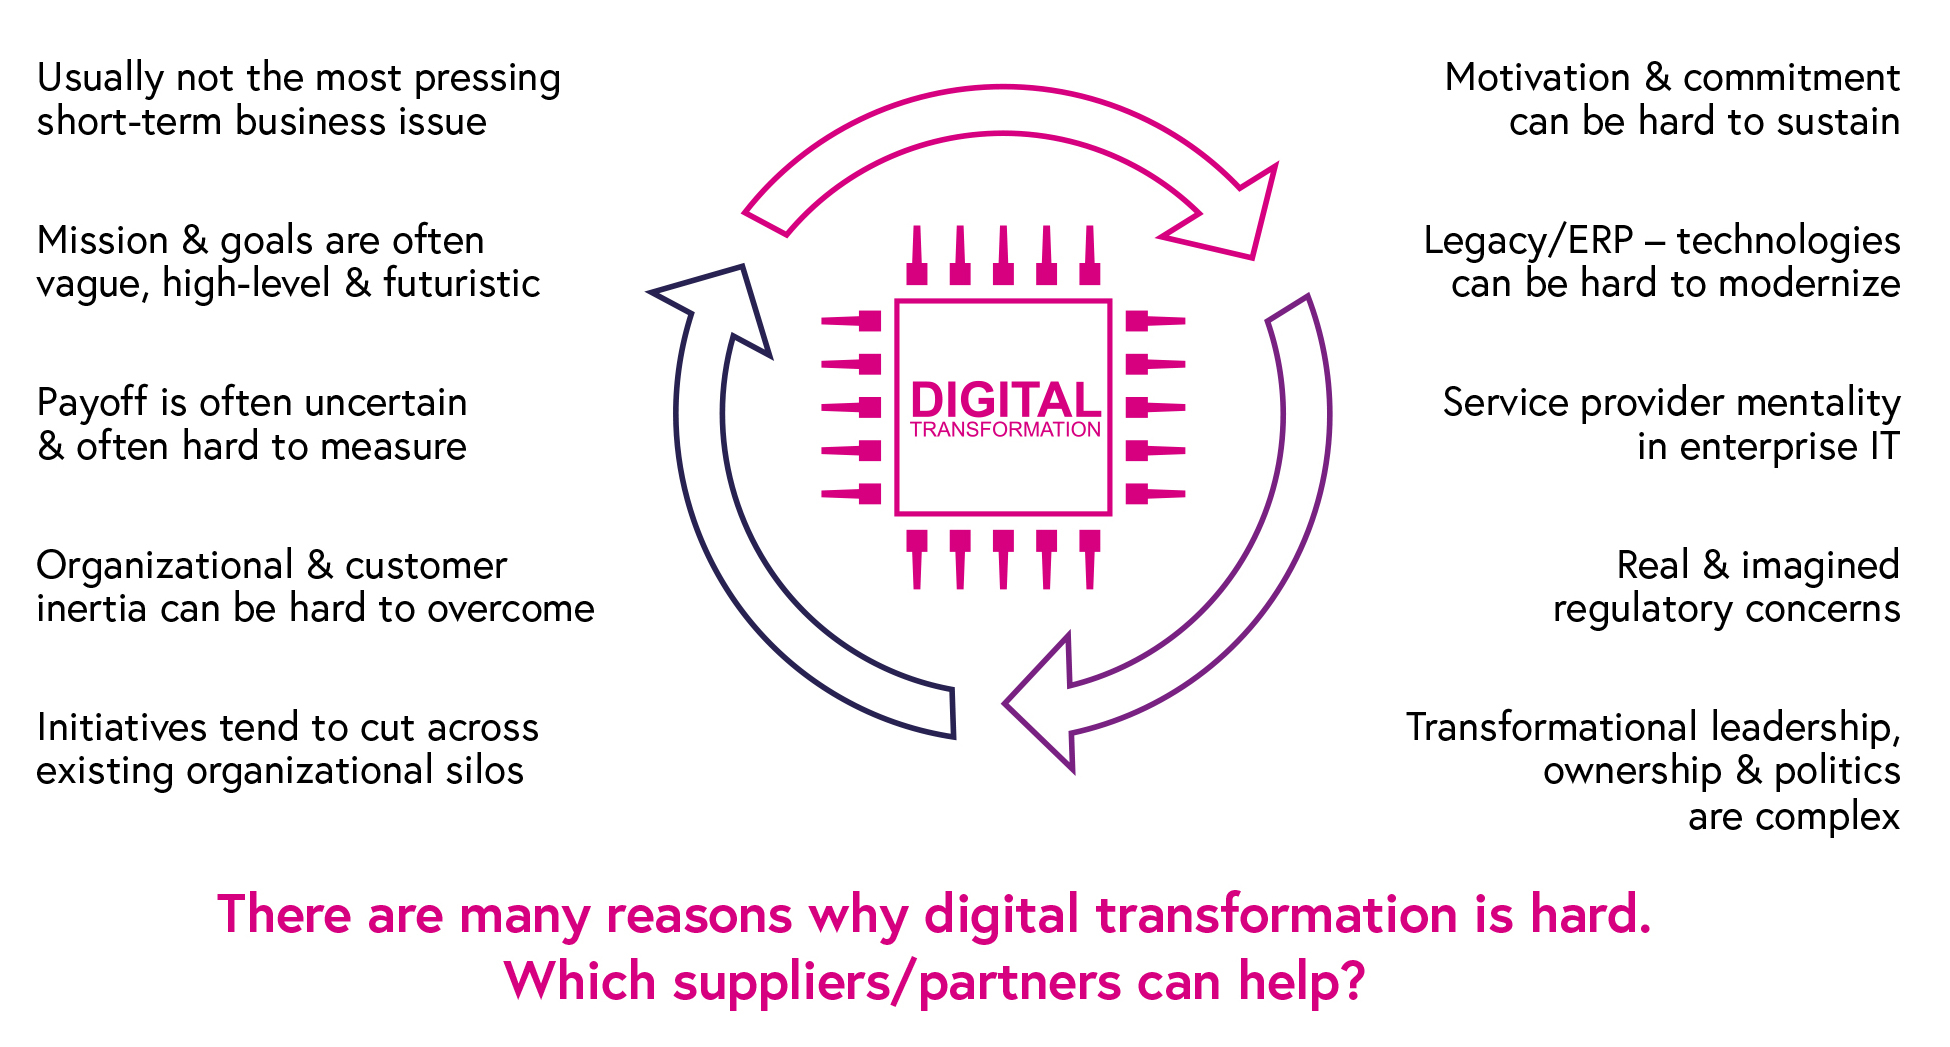 Diagram showing how suppliers/partners can help with digital transformation